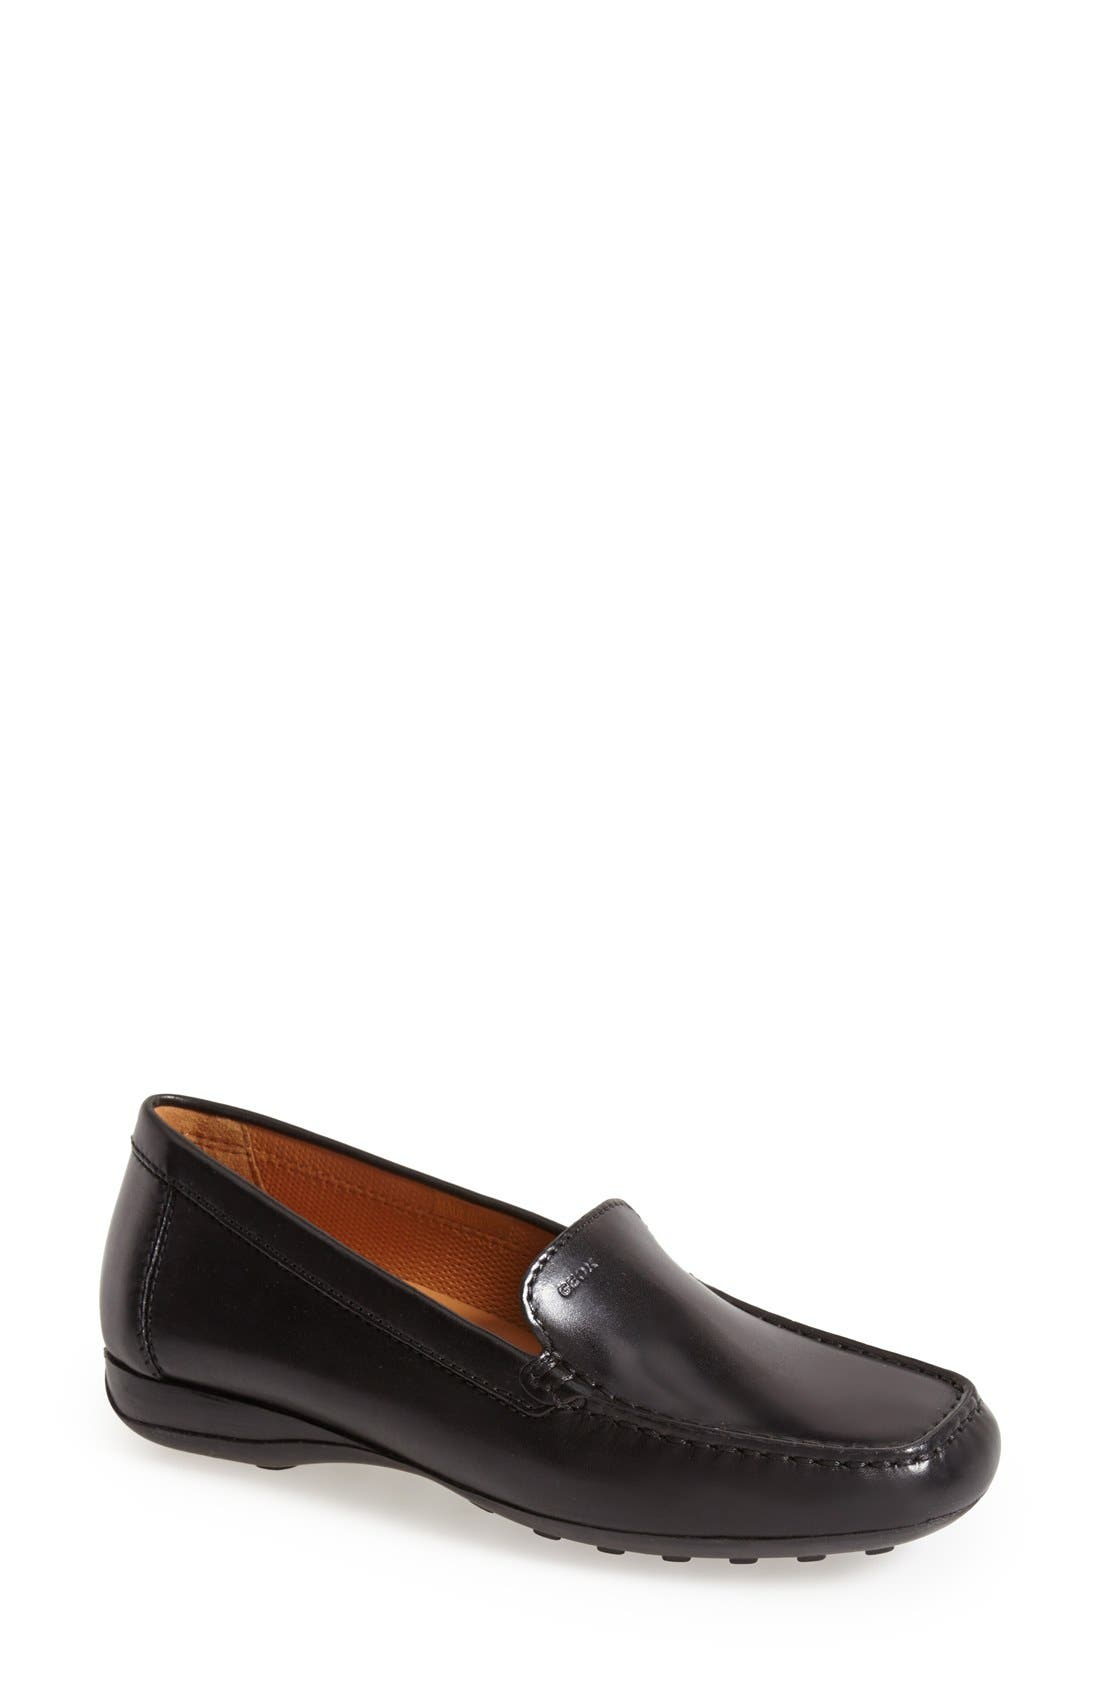 'Euro 18' Loafer,                         Main,                         color, 001